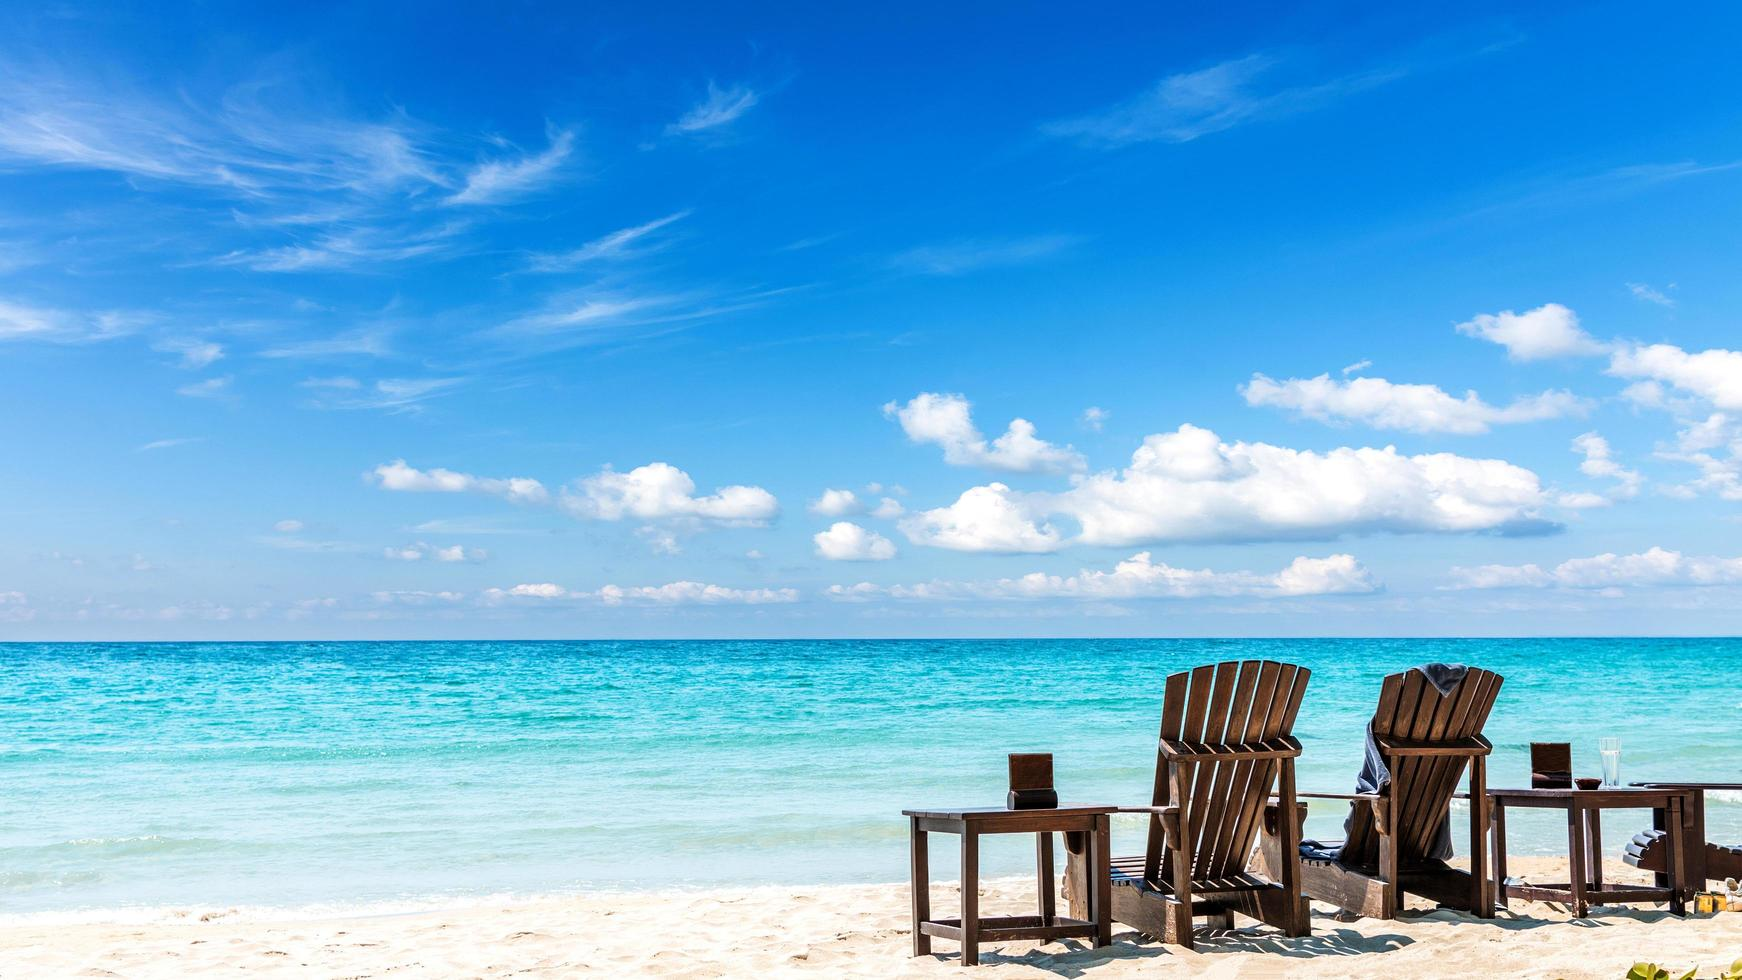 Summer vacation background with deckchairs photo